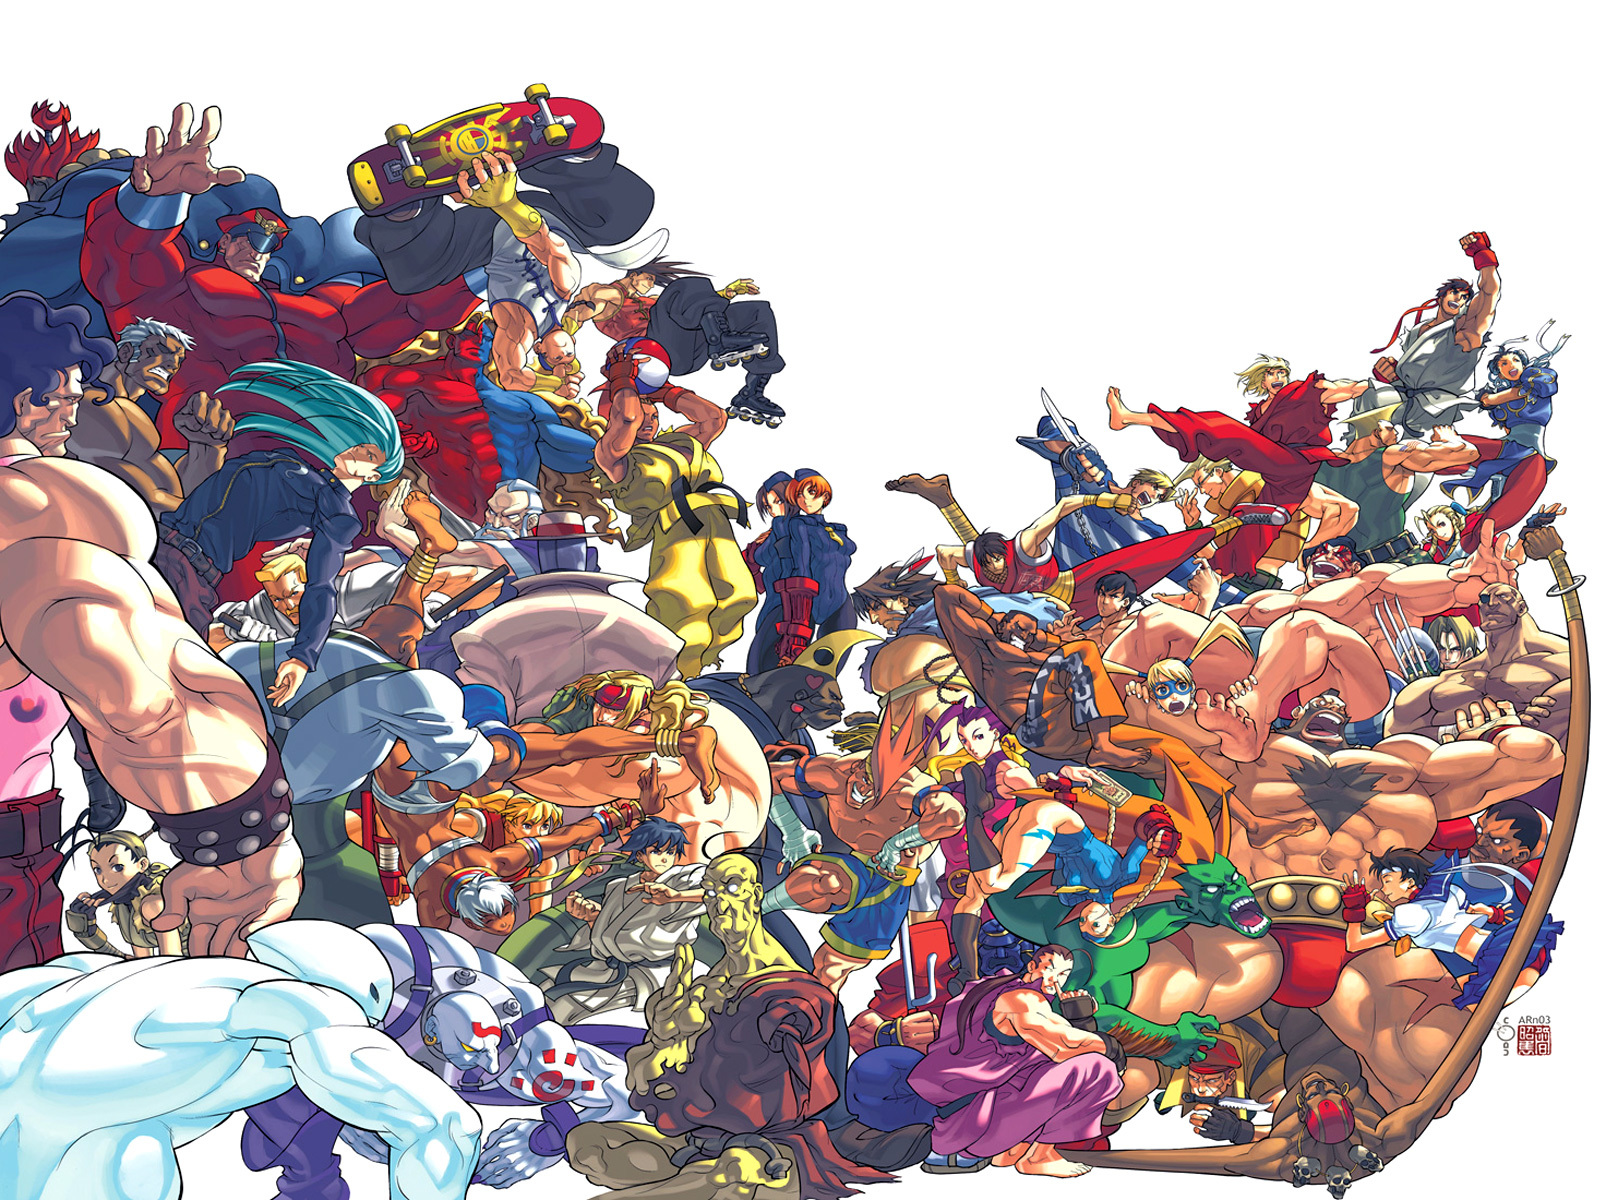 Street Fighter Wallpaper on Street Fighter Hd Wallpaper   General   265686